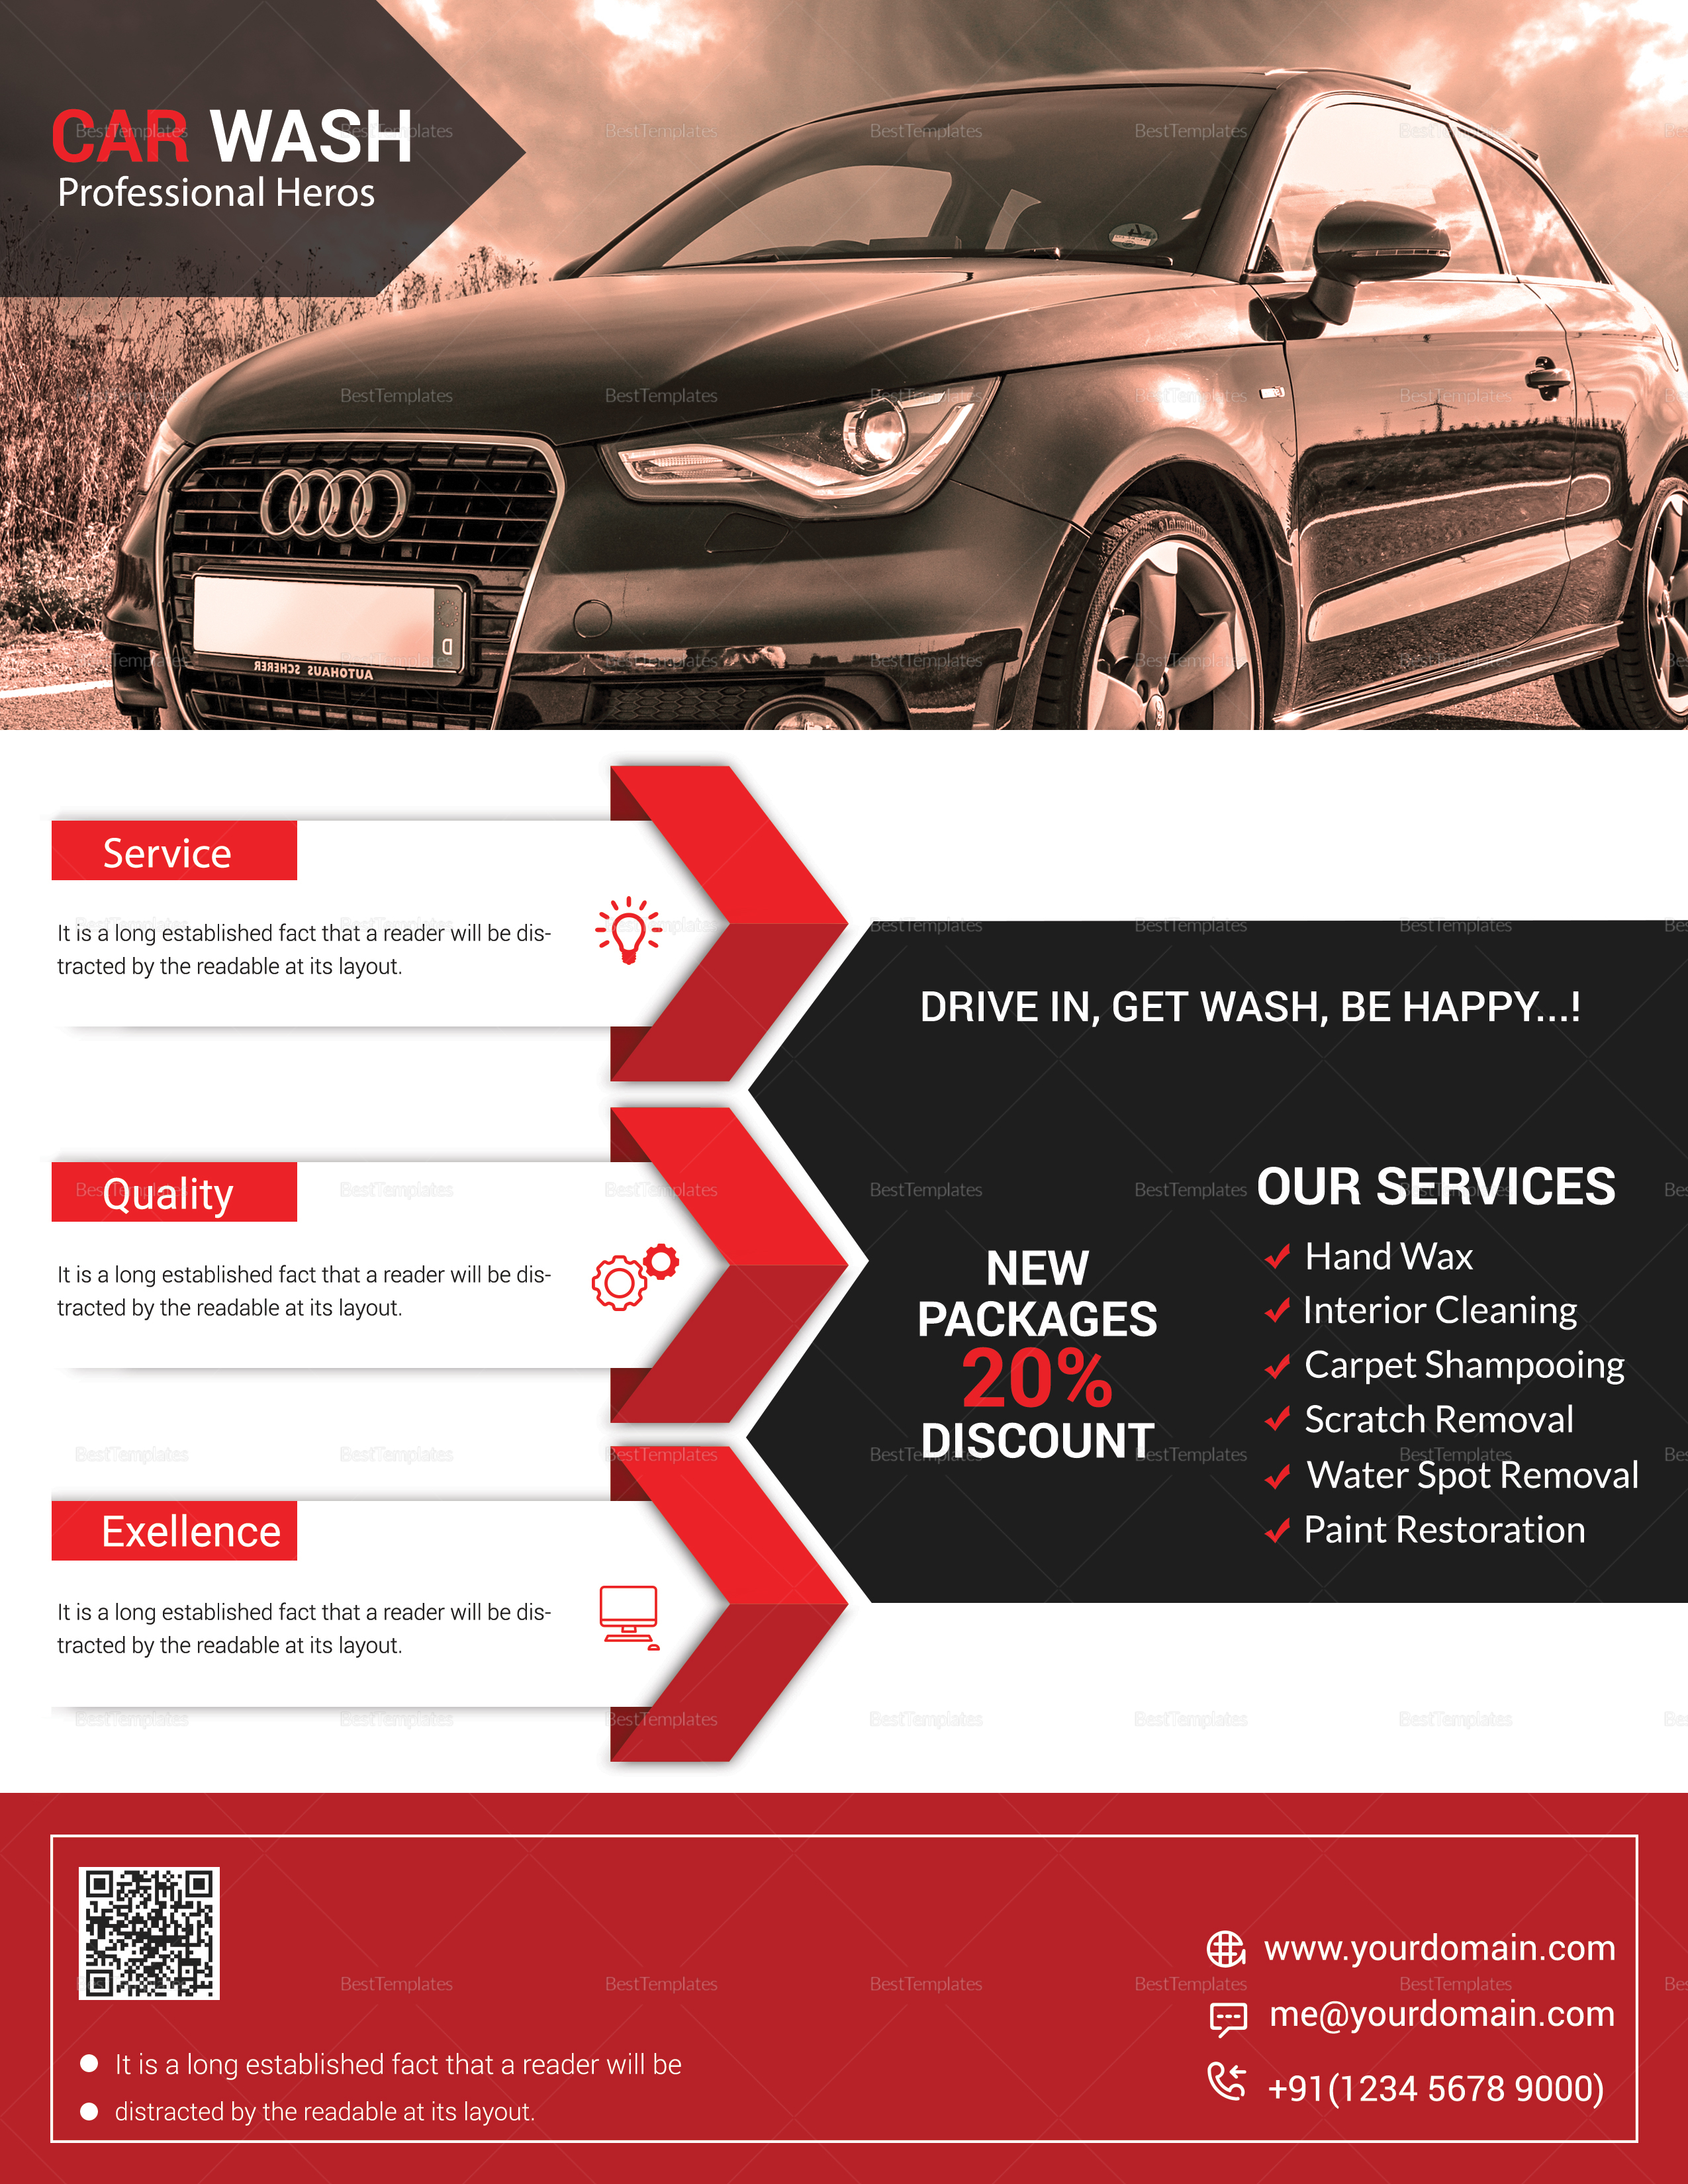 Professional Car Wash Flyer Design Template In Word Psd Publisher